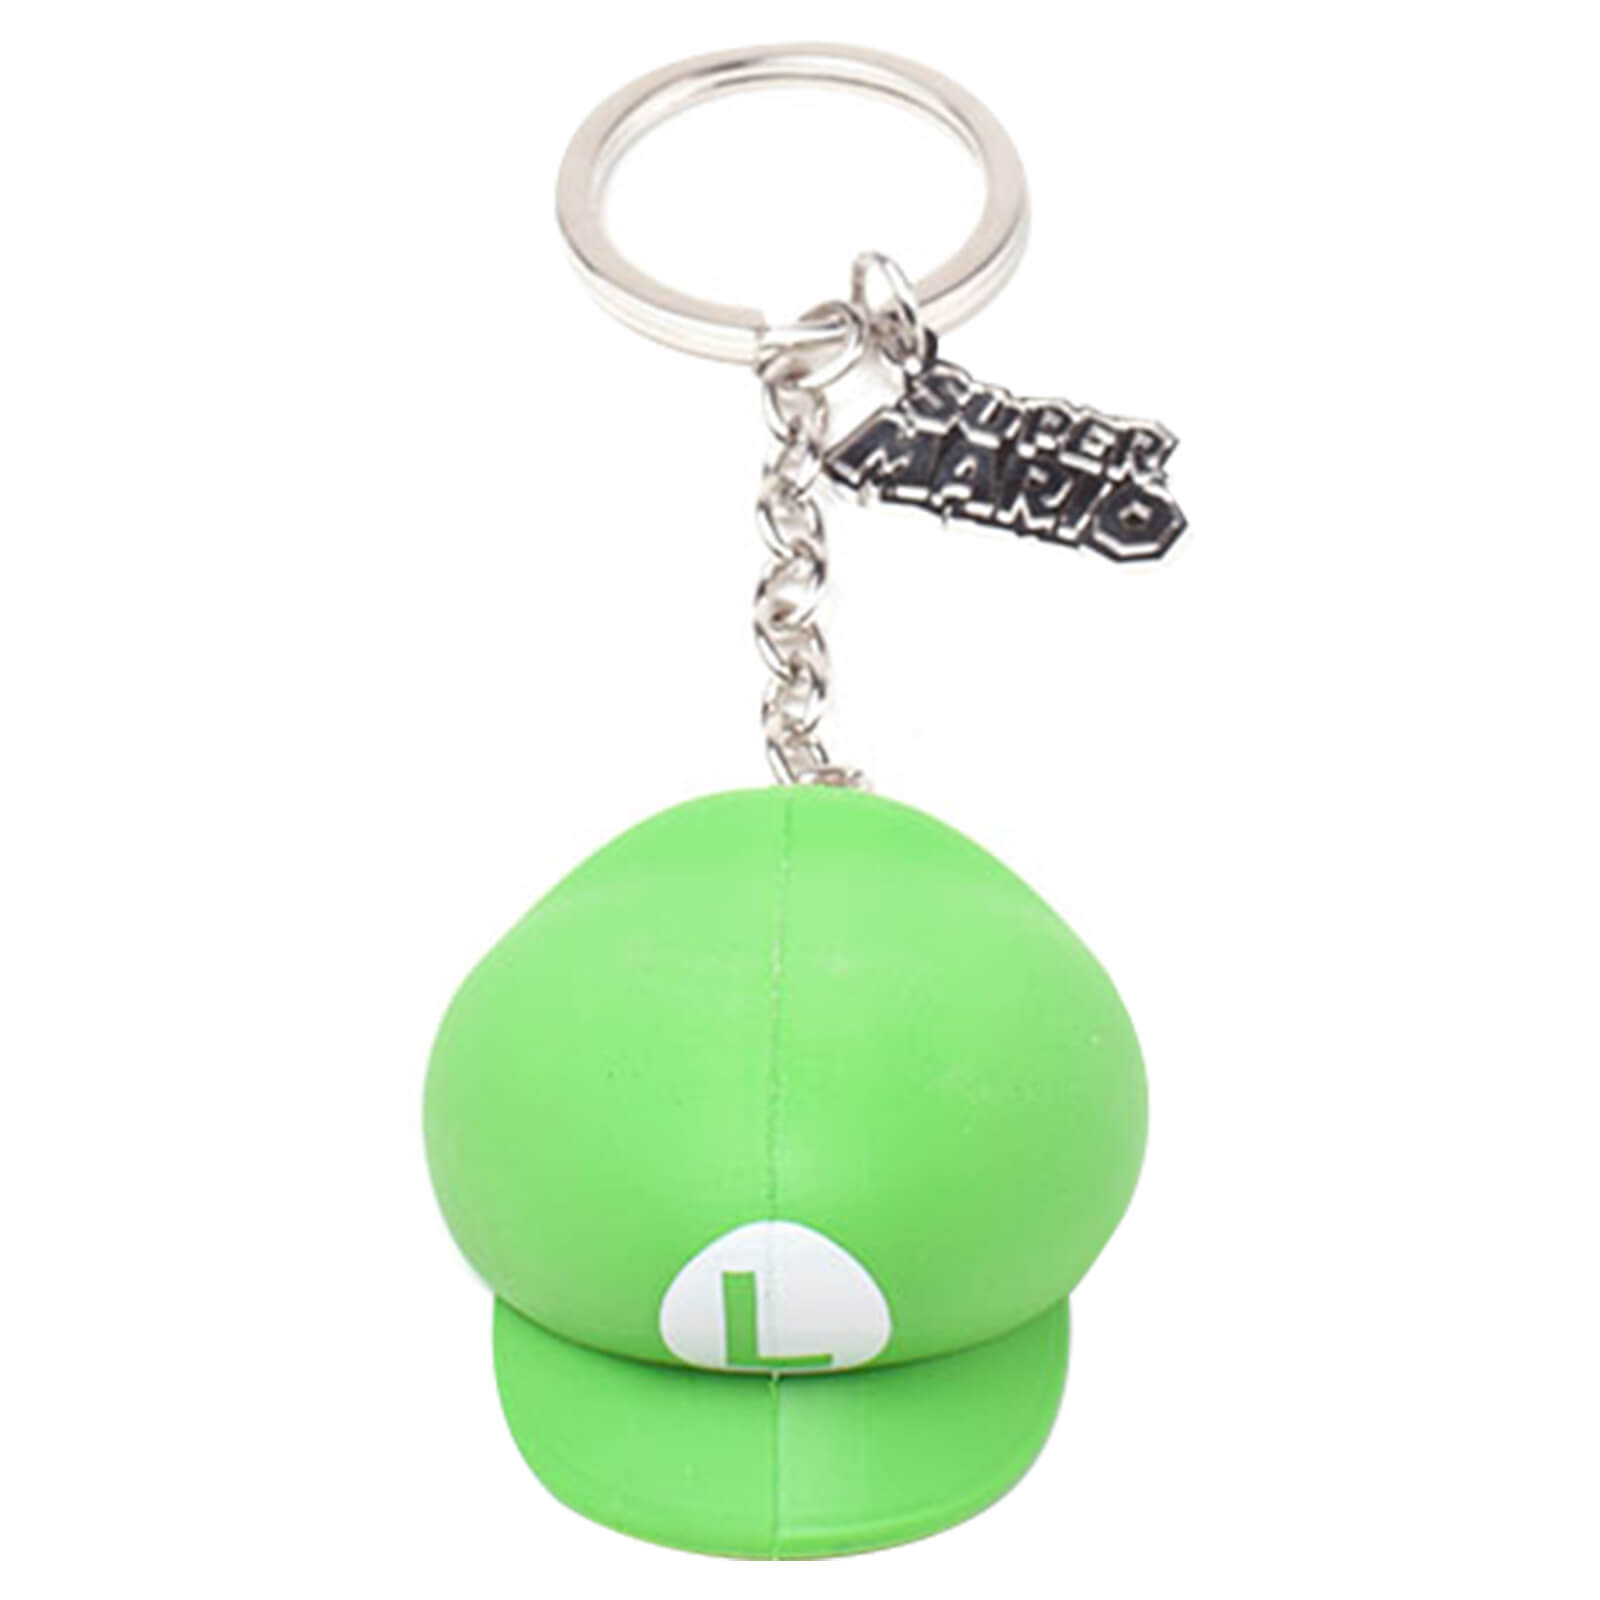 About the Product. Luigi Hat 3D Rubber Keychain 5c67496f8